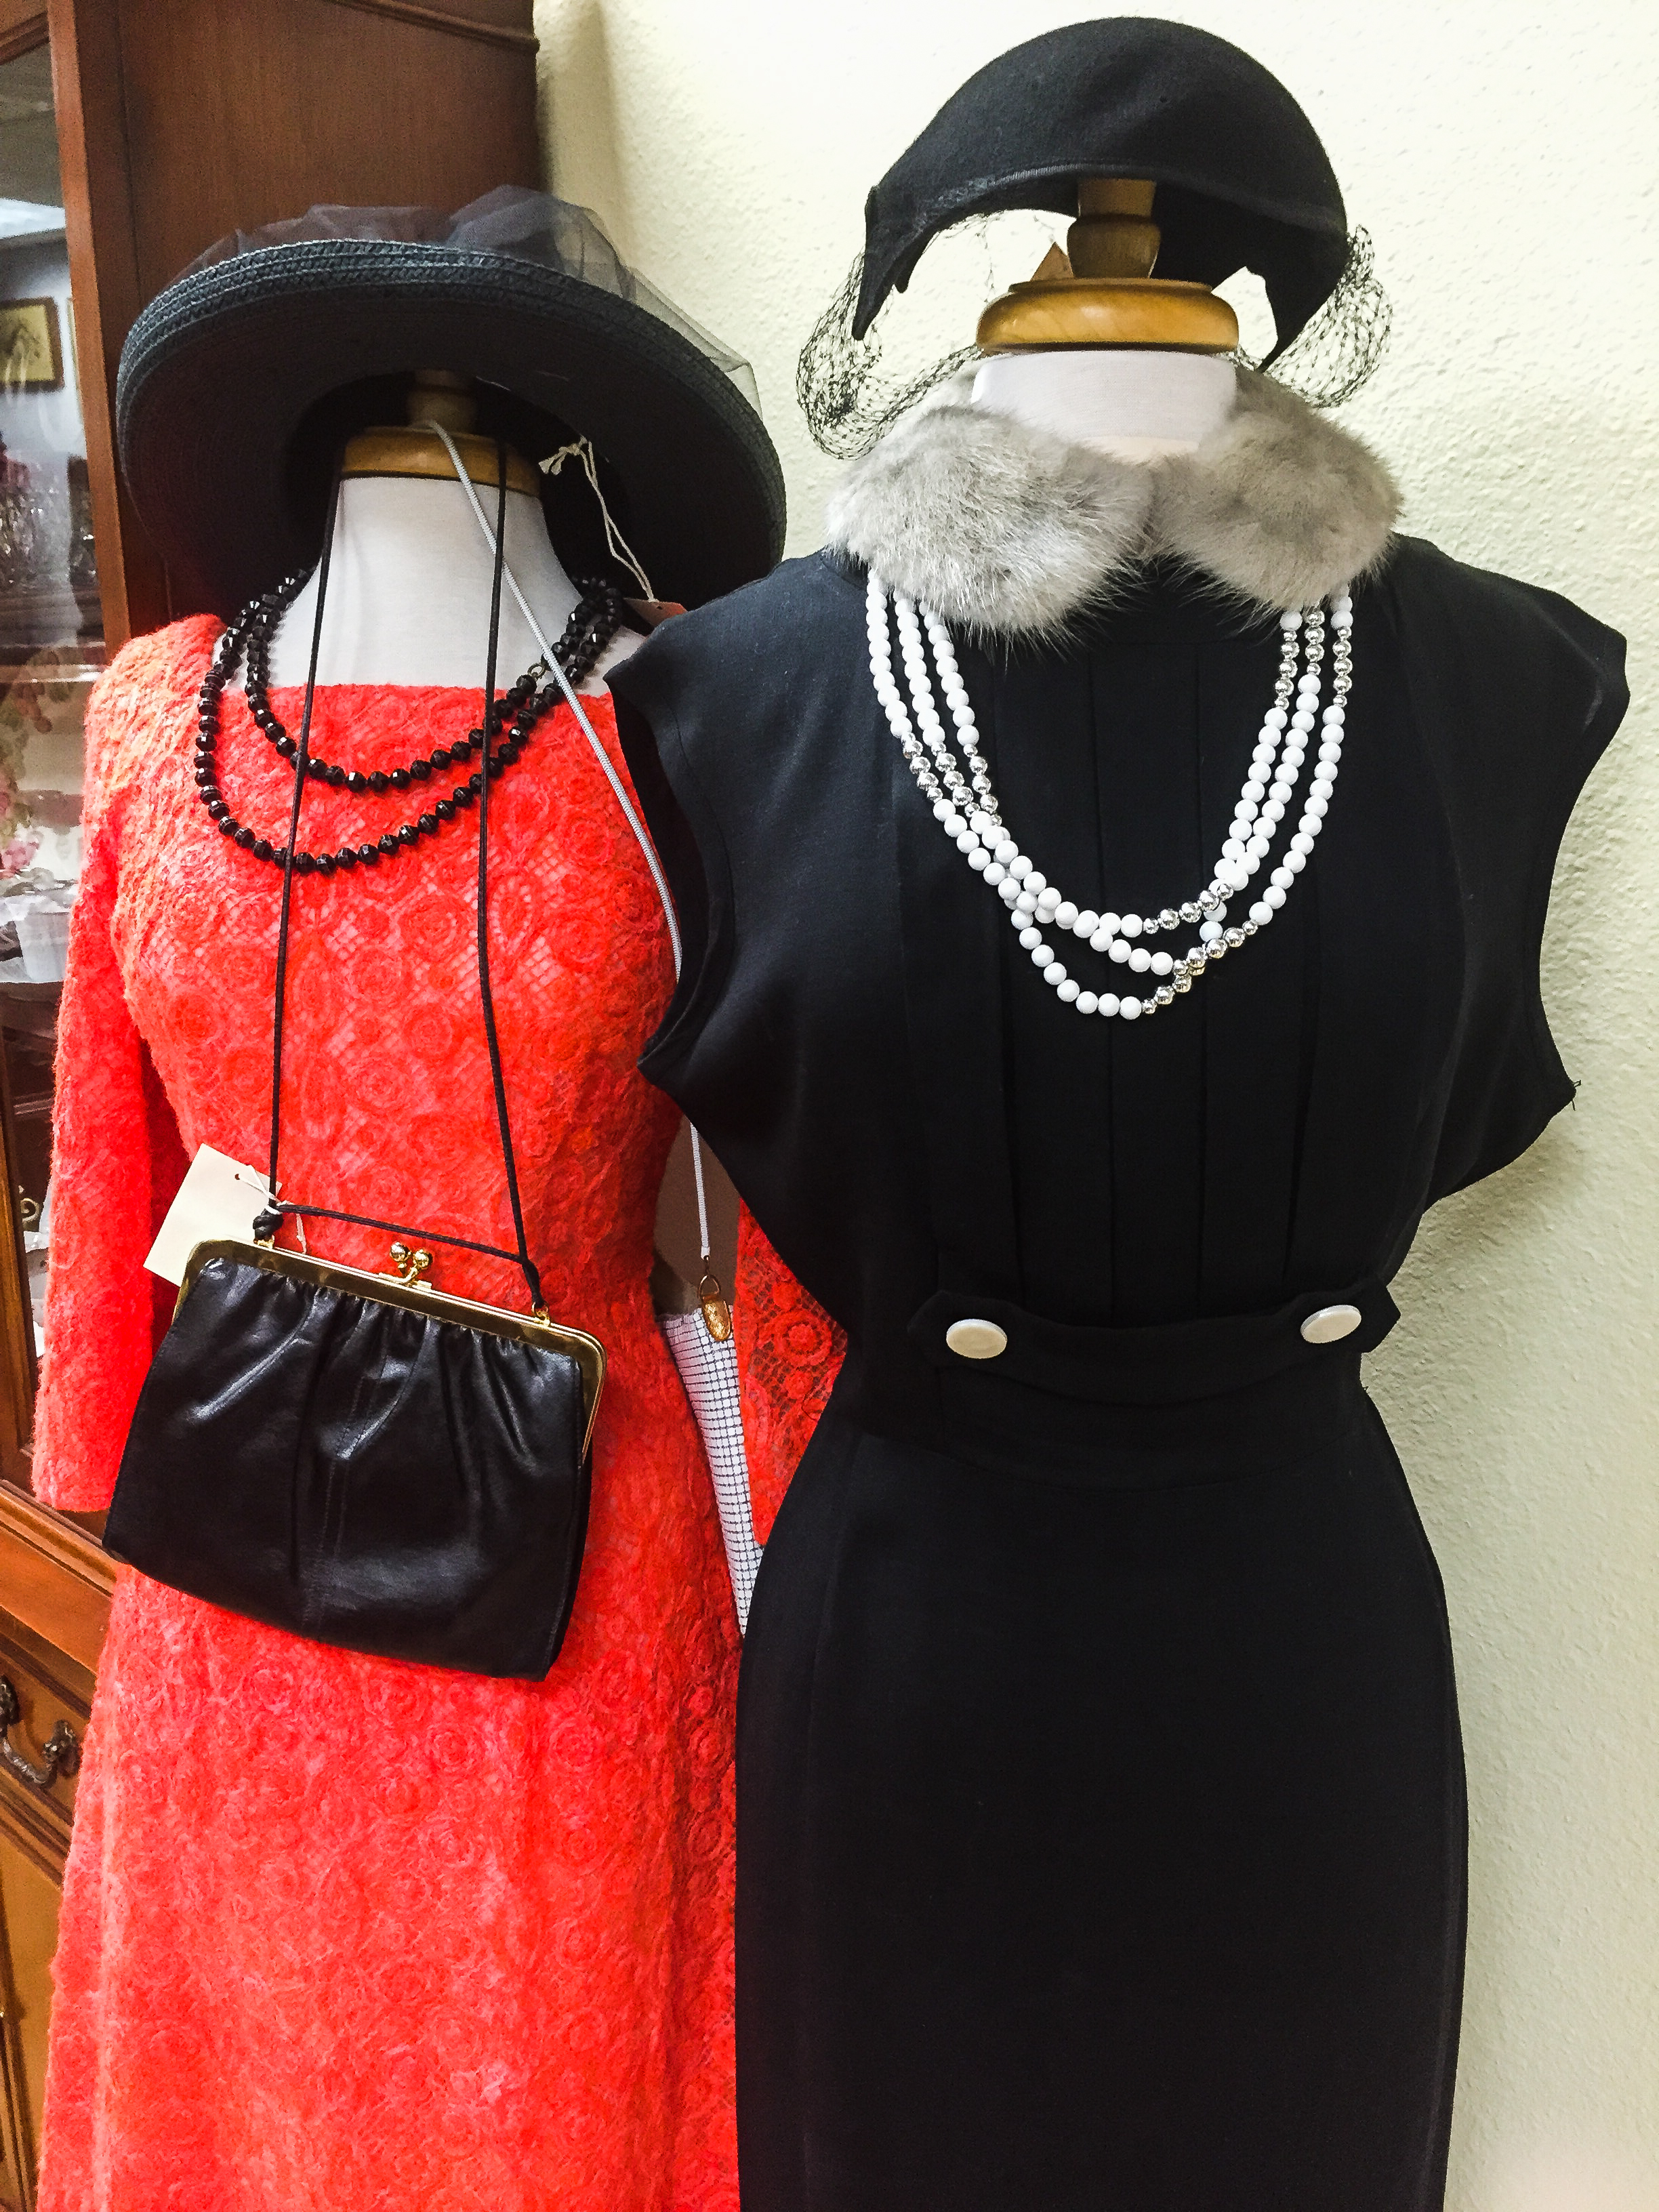 We carry vintage clothing!